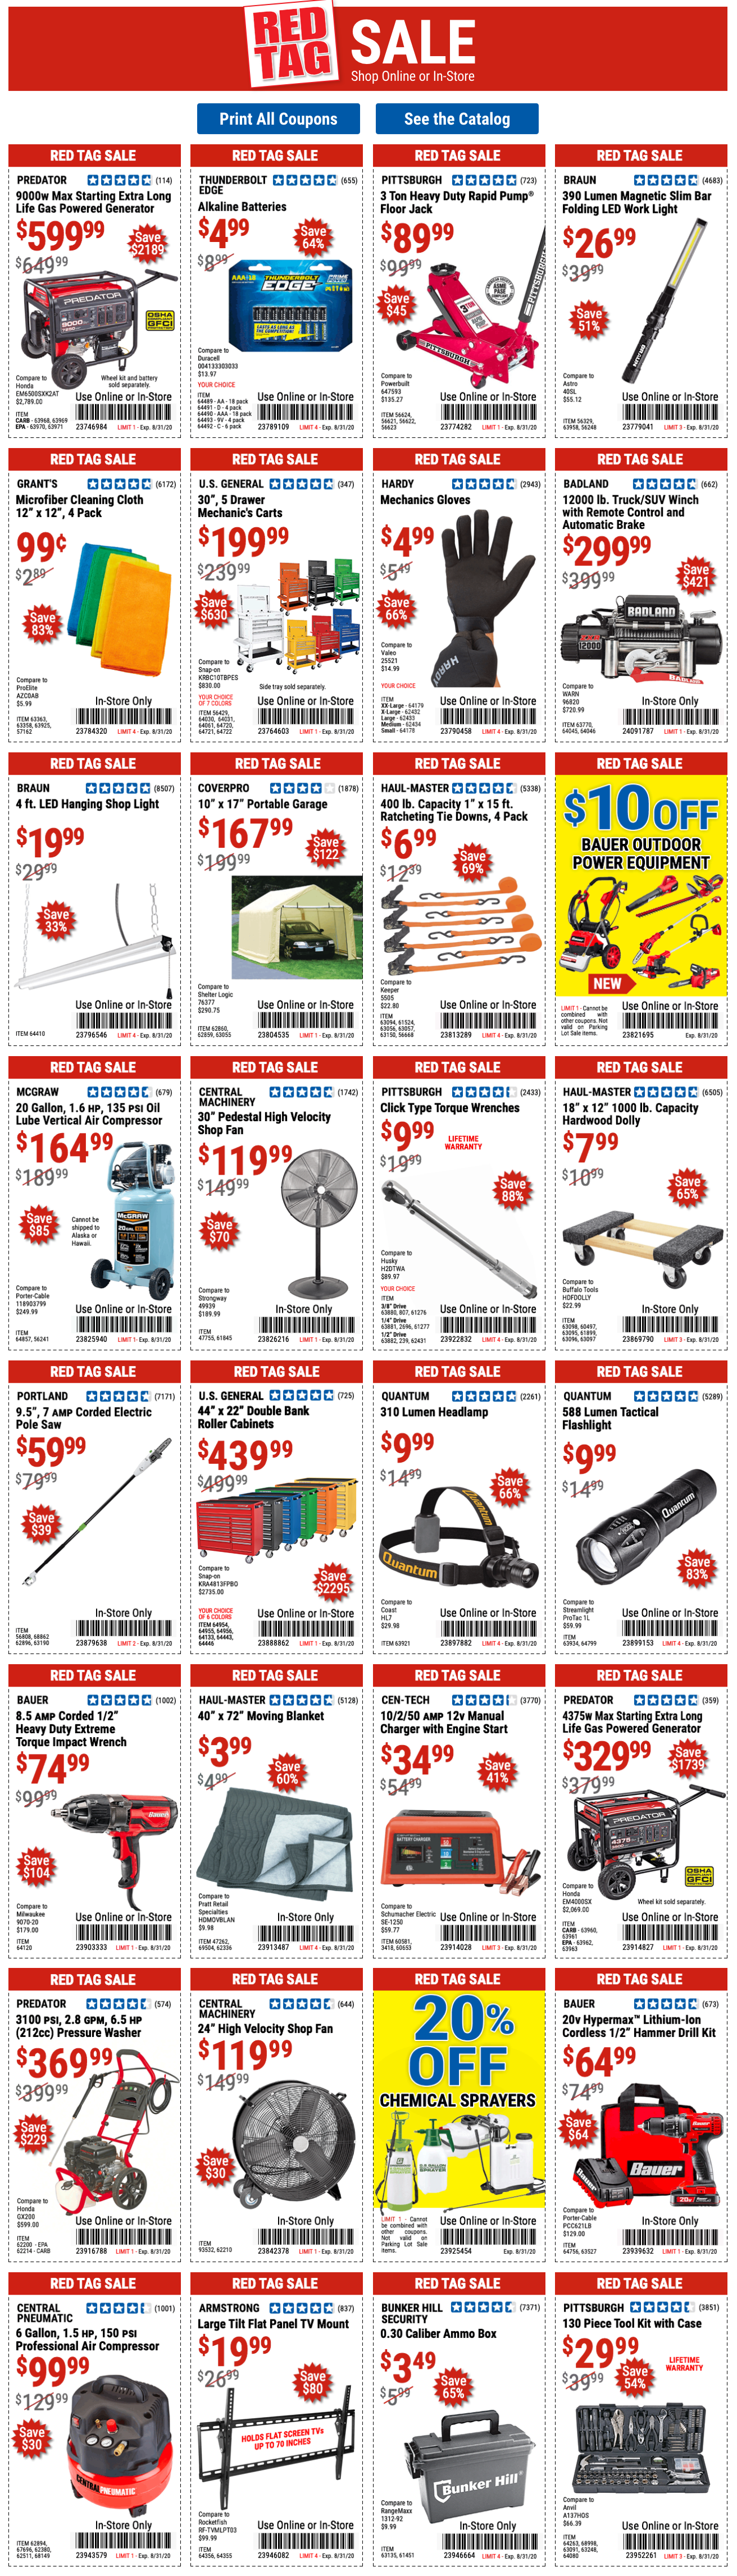 Harbor Freight Coupons Expired 31/8/2020 in 2020 Harbor